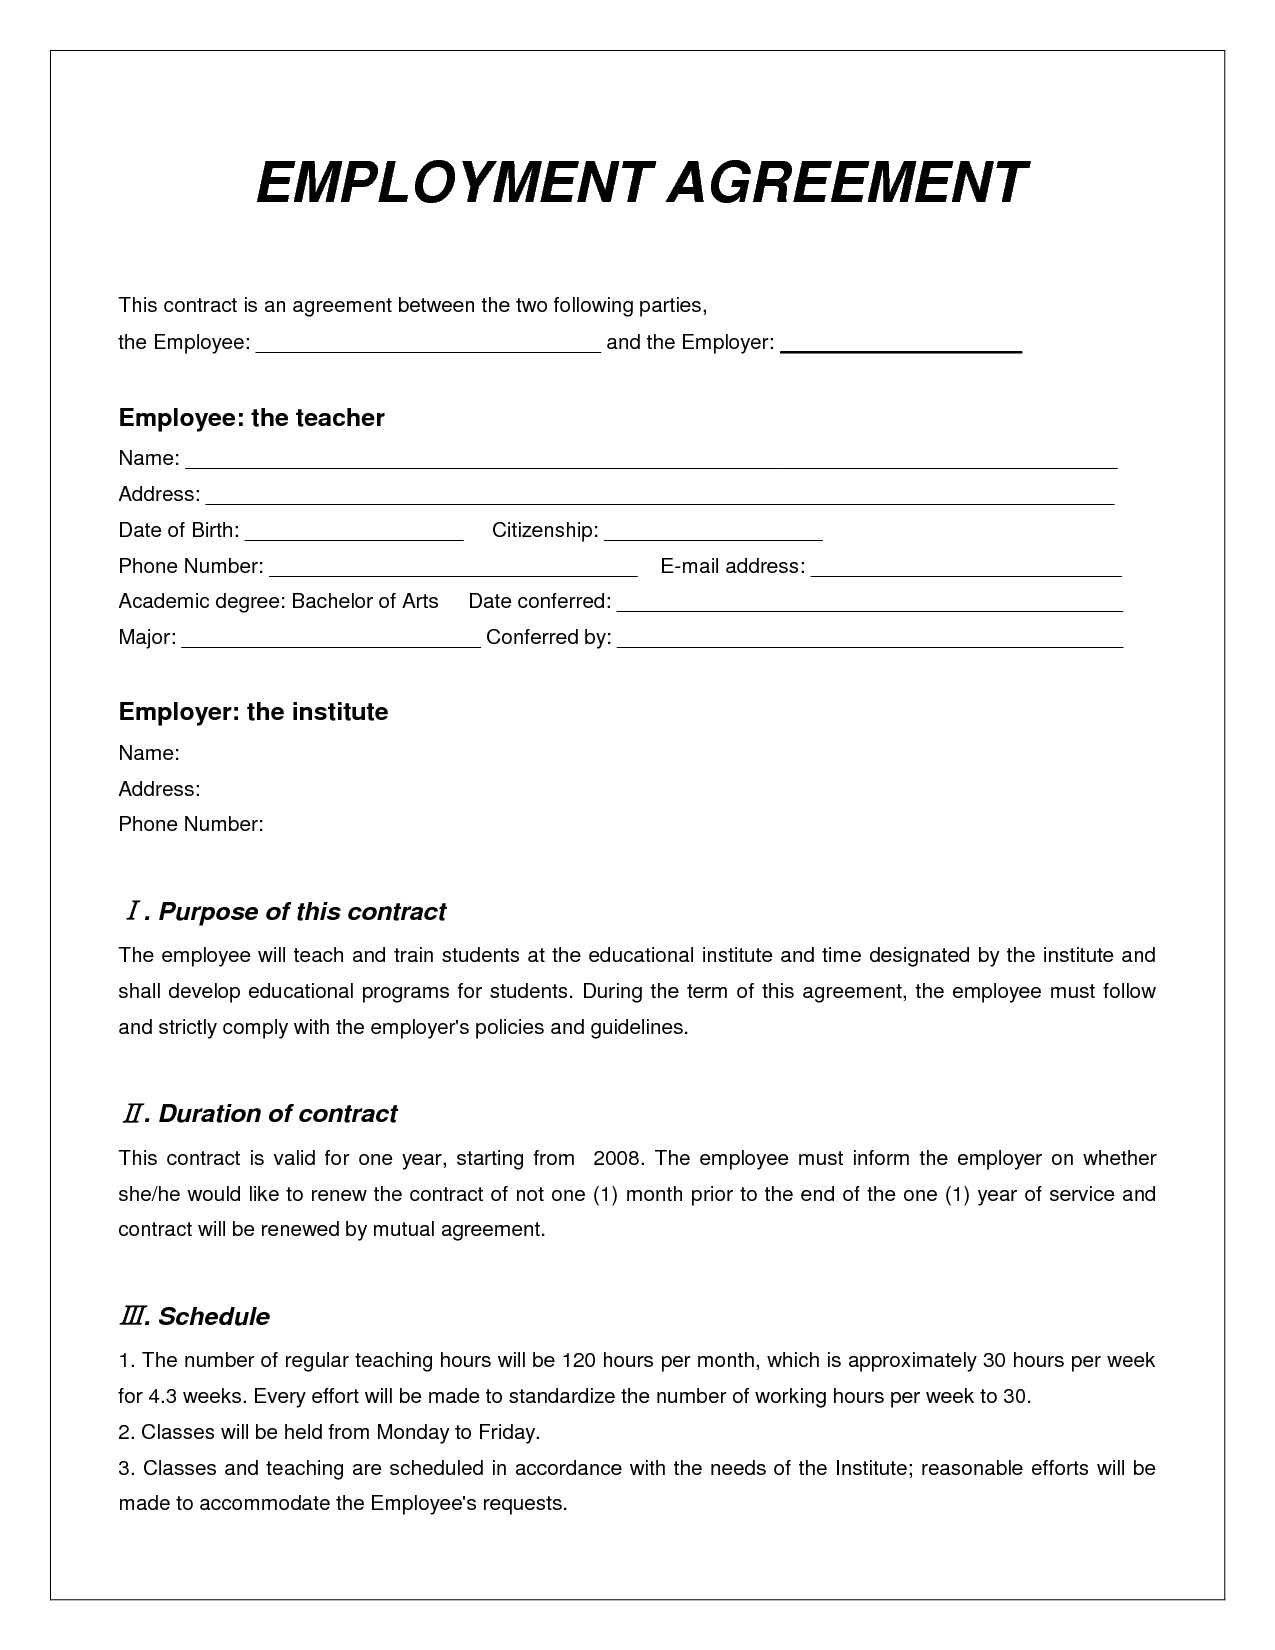 employee agreement form Ecza.solinf.co